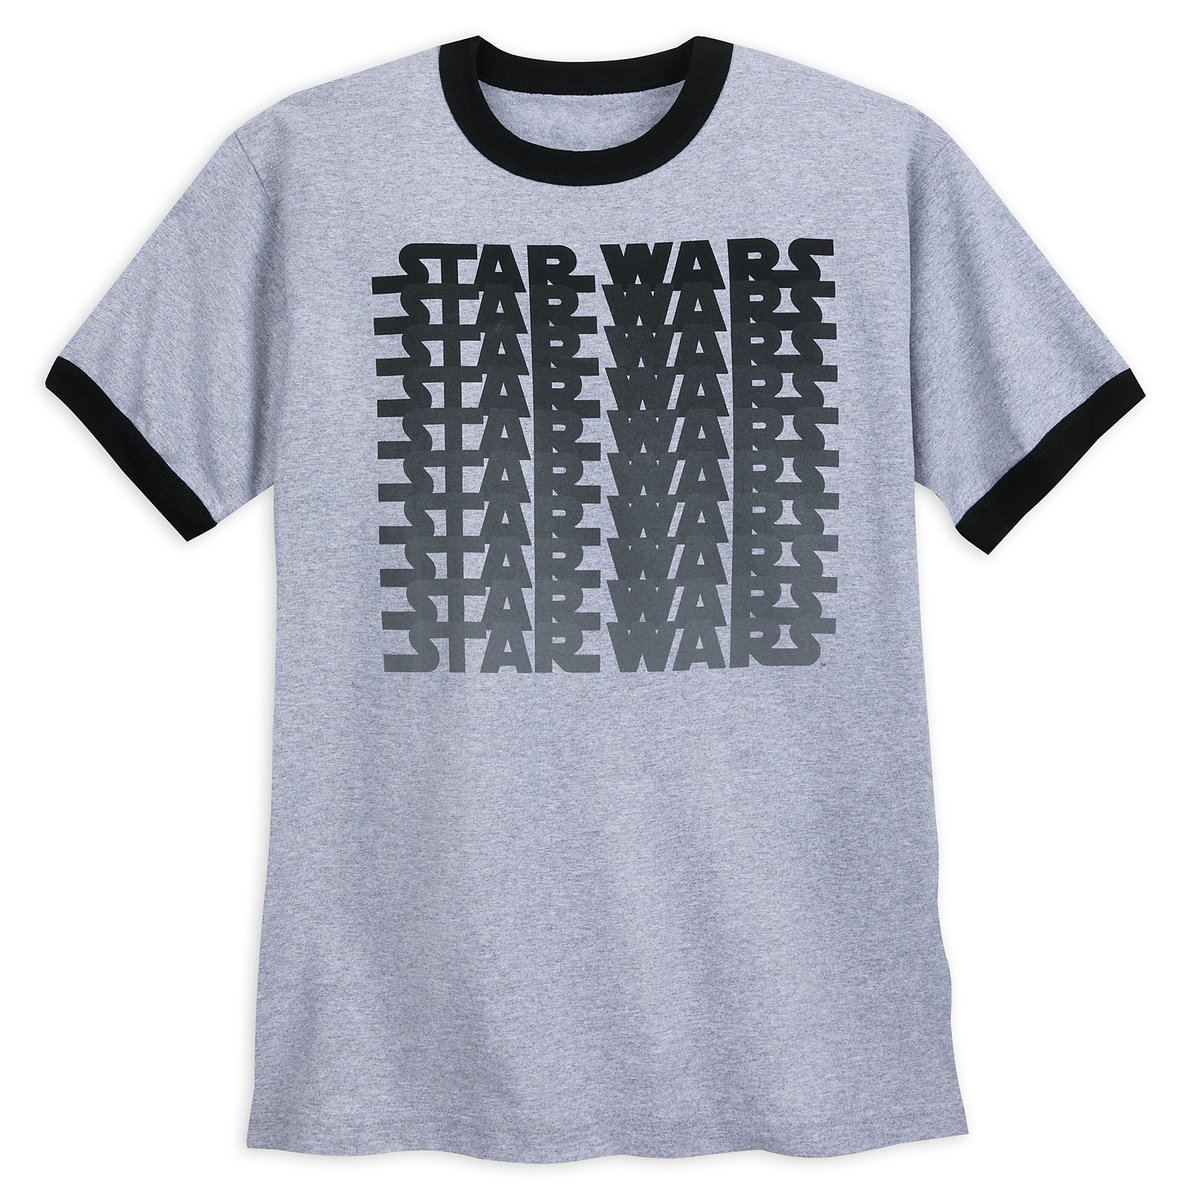 031ac582 Product Image of Star Wars Logo Ringer T-Shirt for Adults # 1